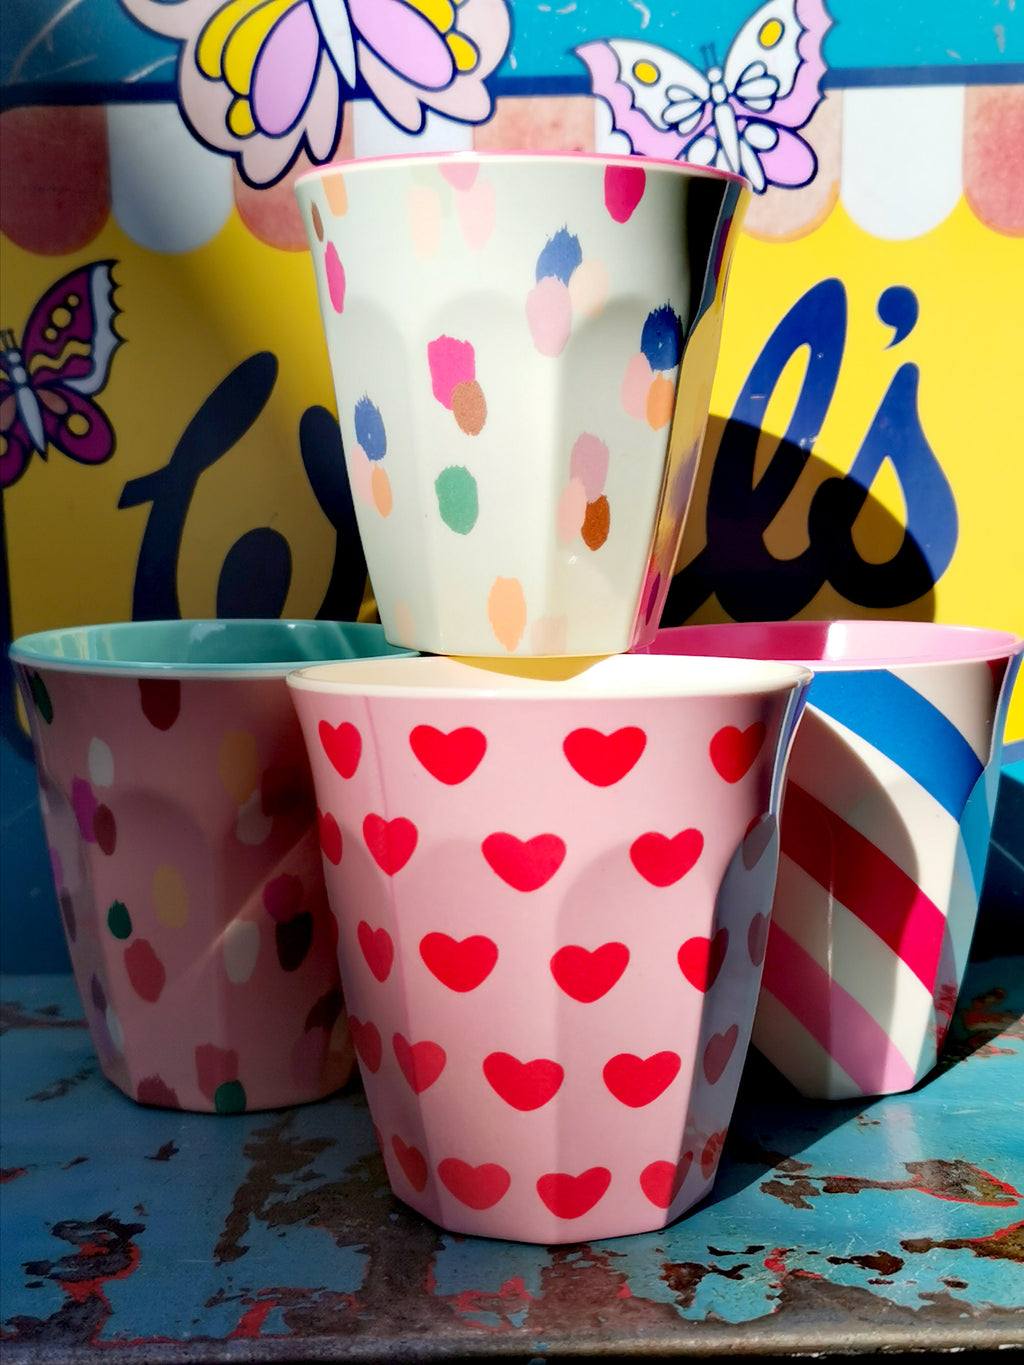 Fab patterns in these classic melamine beakers, stack them up and enjoy adding a bit more colour to your kitchen!  Durable and safe (BPA free) , these are great for kids, camping, picnics and the joy of colour!  Hot and cold drinks, ice cream too!!   Dishwasher safe, but do not use in the microwave.   9cm high, top diameter 8.5cm